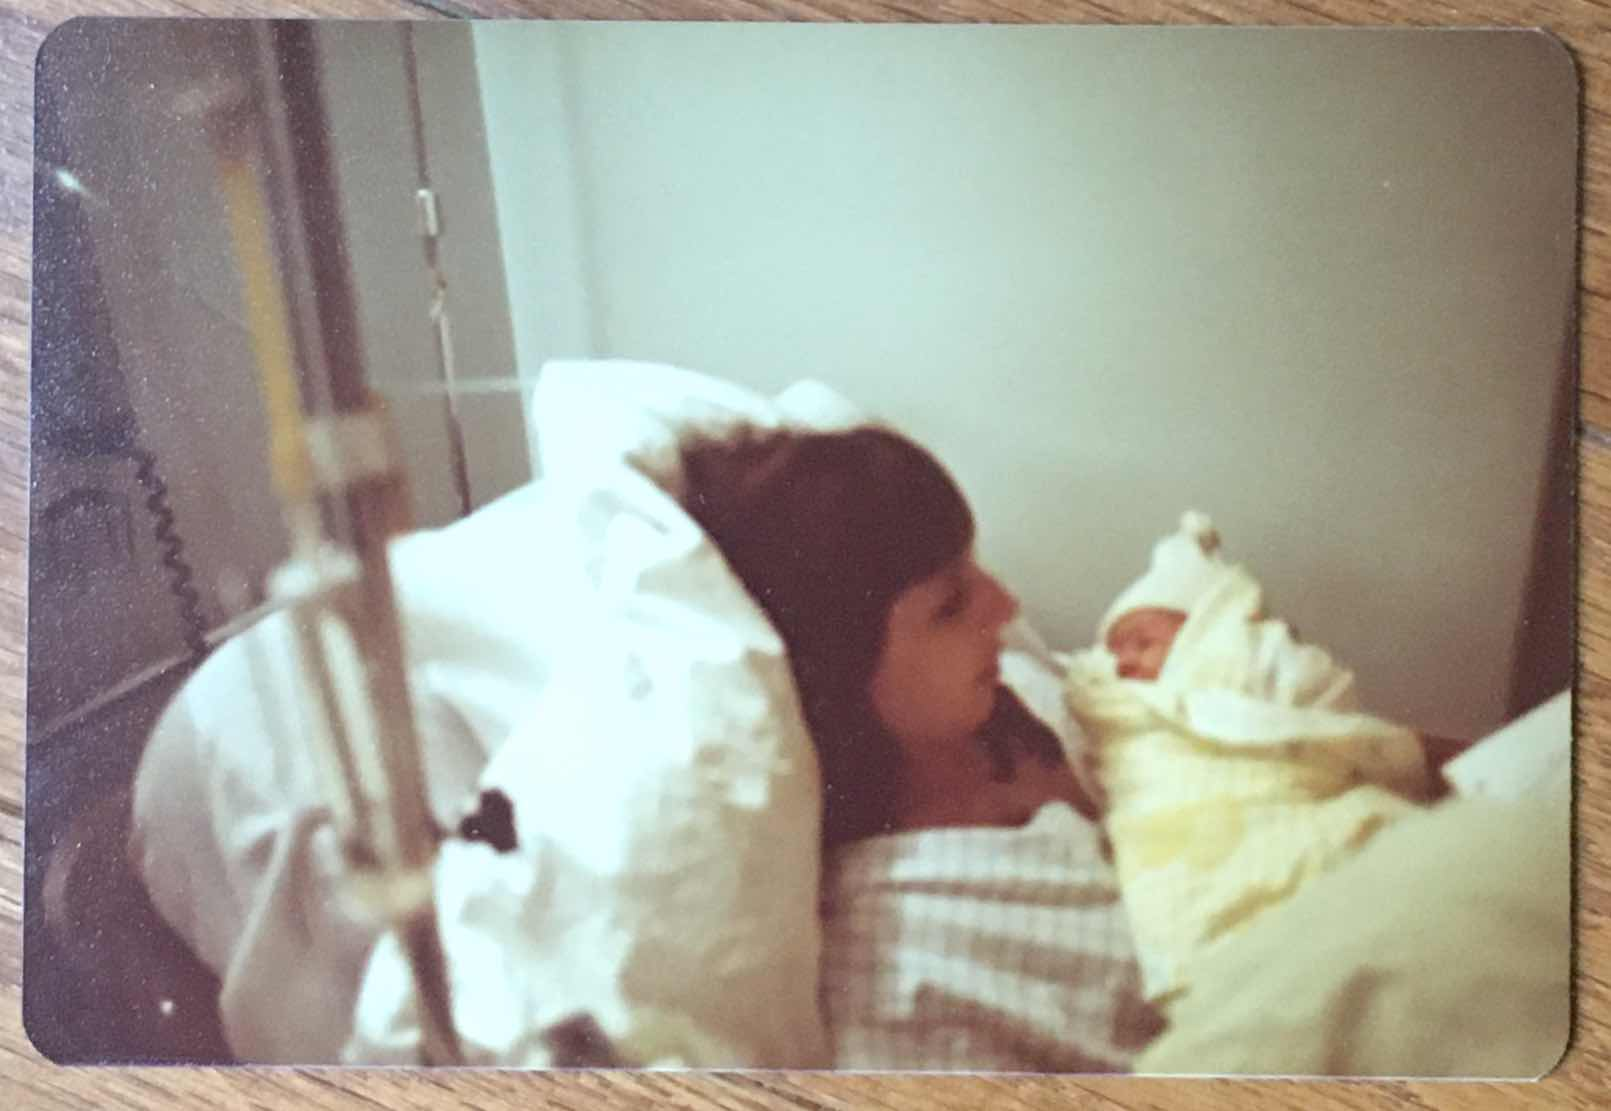 Maggie Lemere's mother holds Maggie in a hospital bed shortly after giving birth